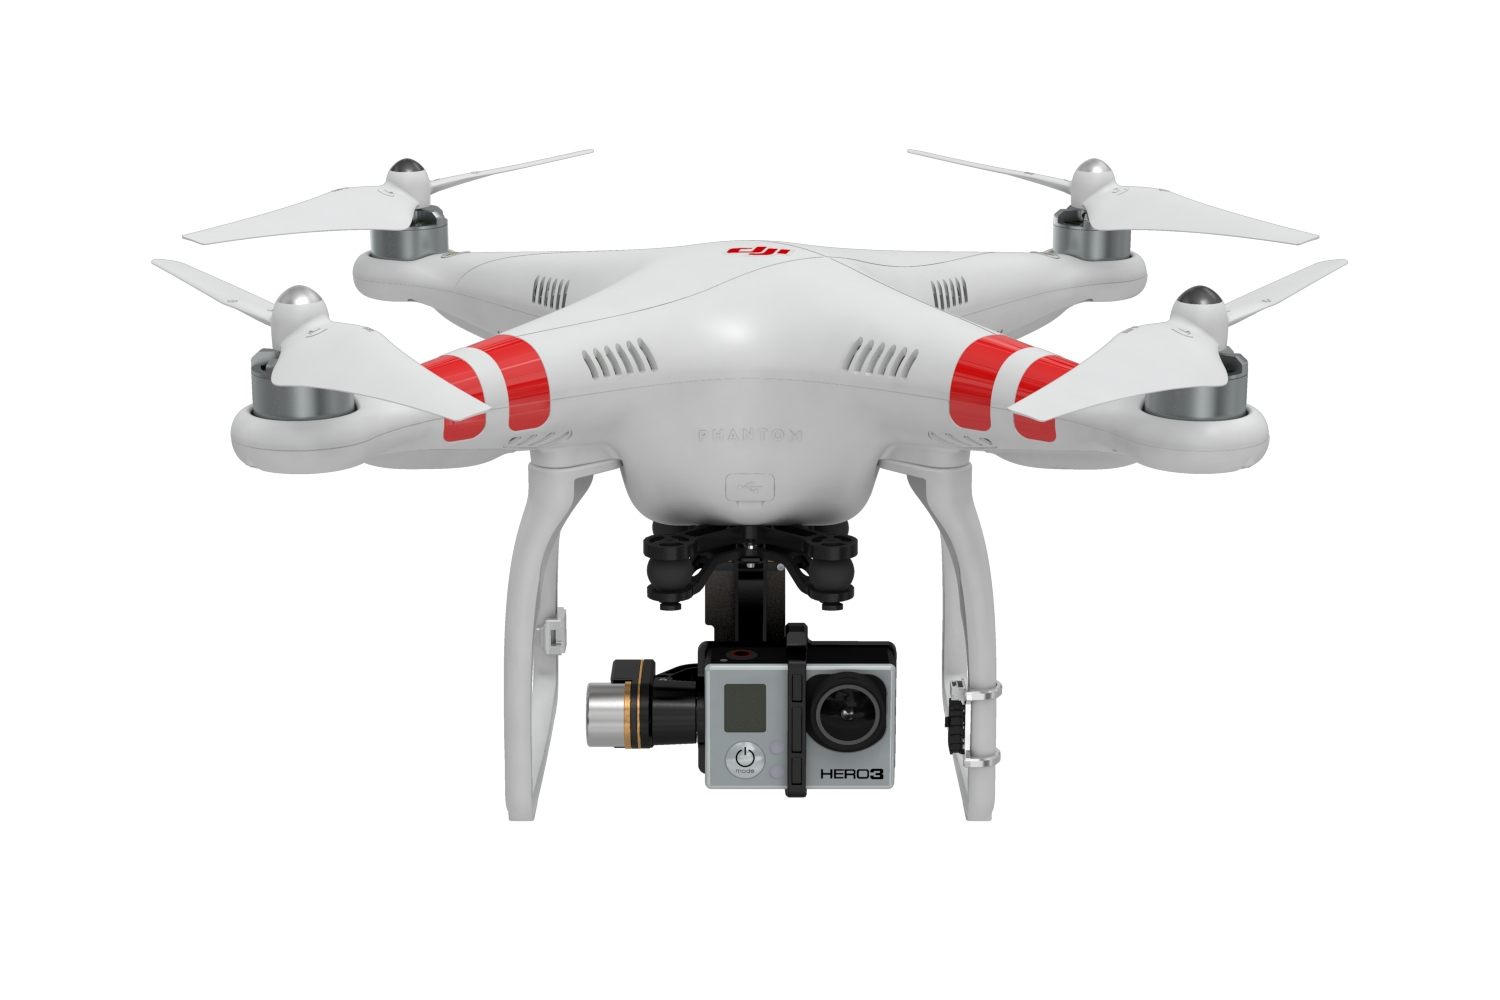 gopro drone phantom with Gopro Y Los Drones on The City Above The Hill Brasov Romania further Thing 1612223 together with The New Dji Phantom 4 With Auto Obstacle Avoidance Technology in addition Goproredfilterpack in addition Watch.